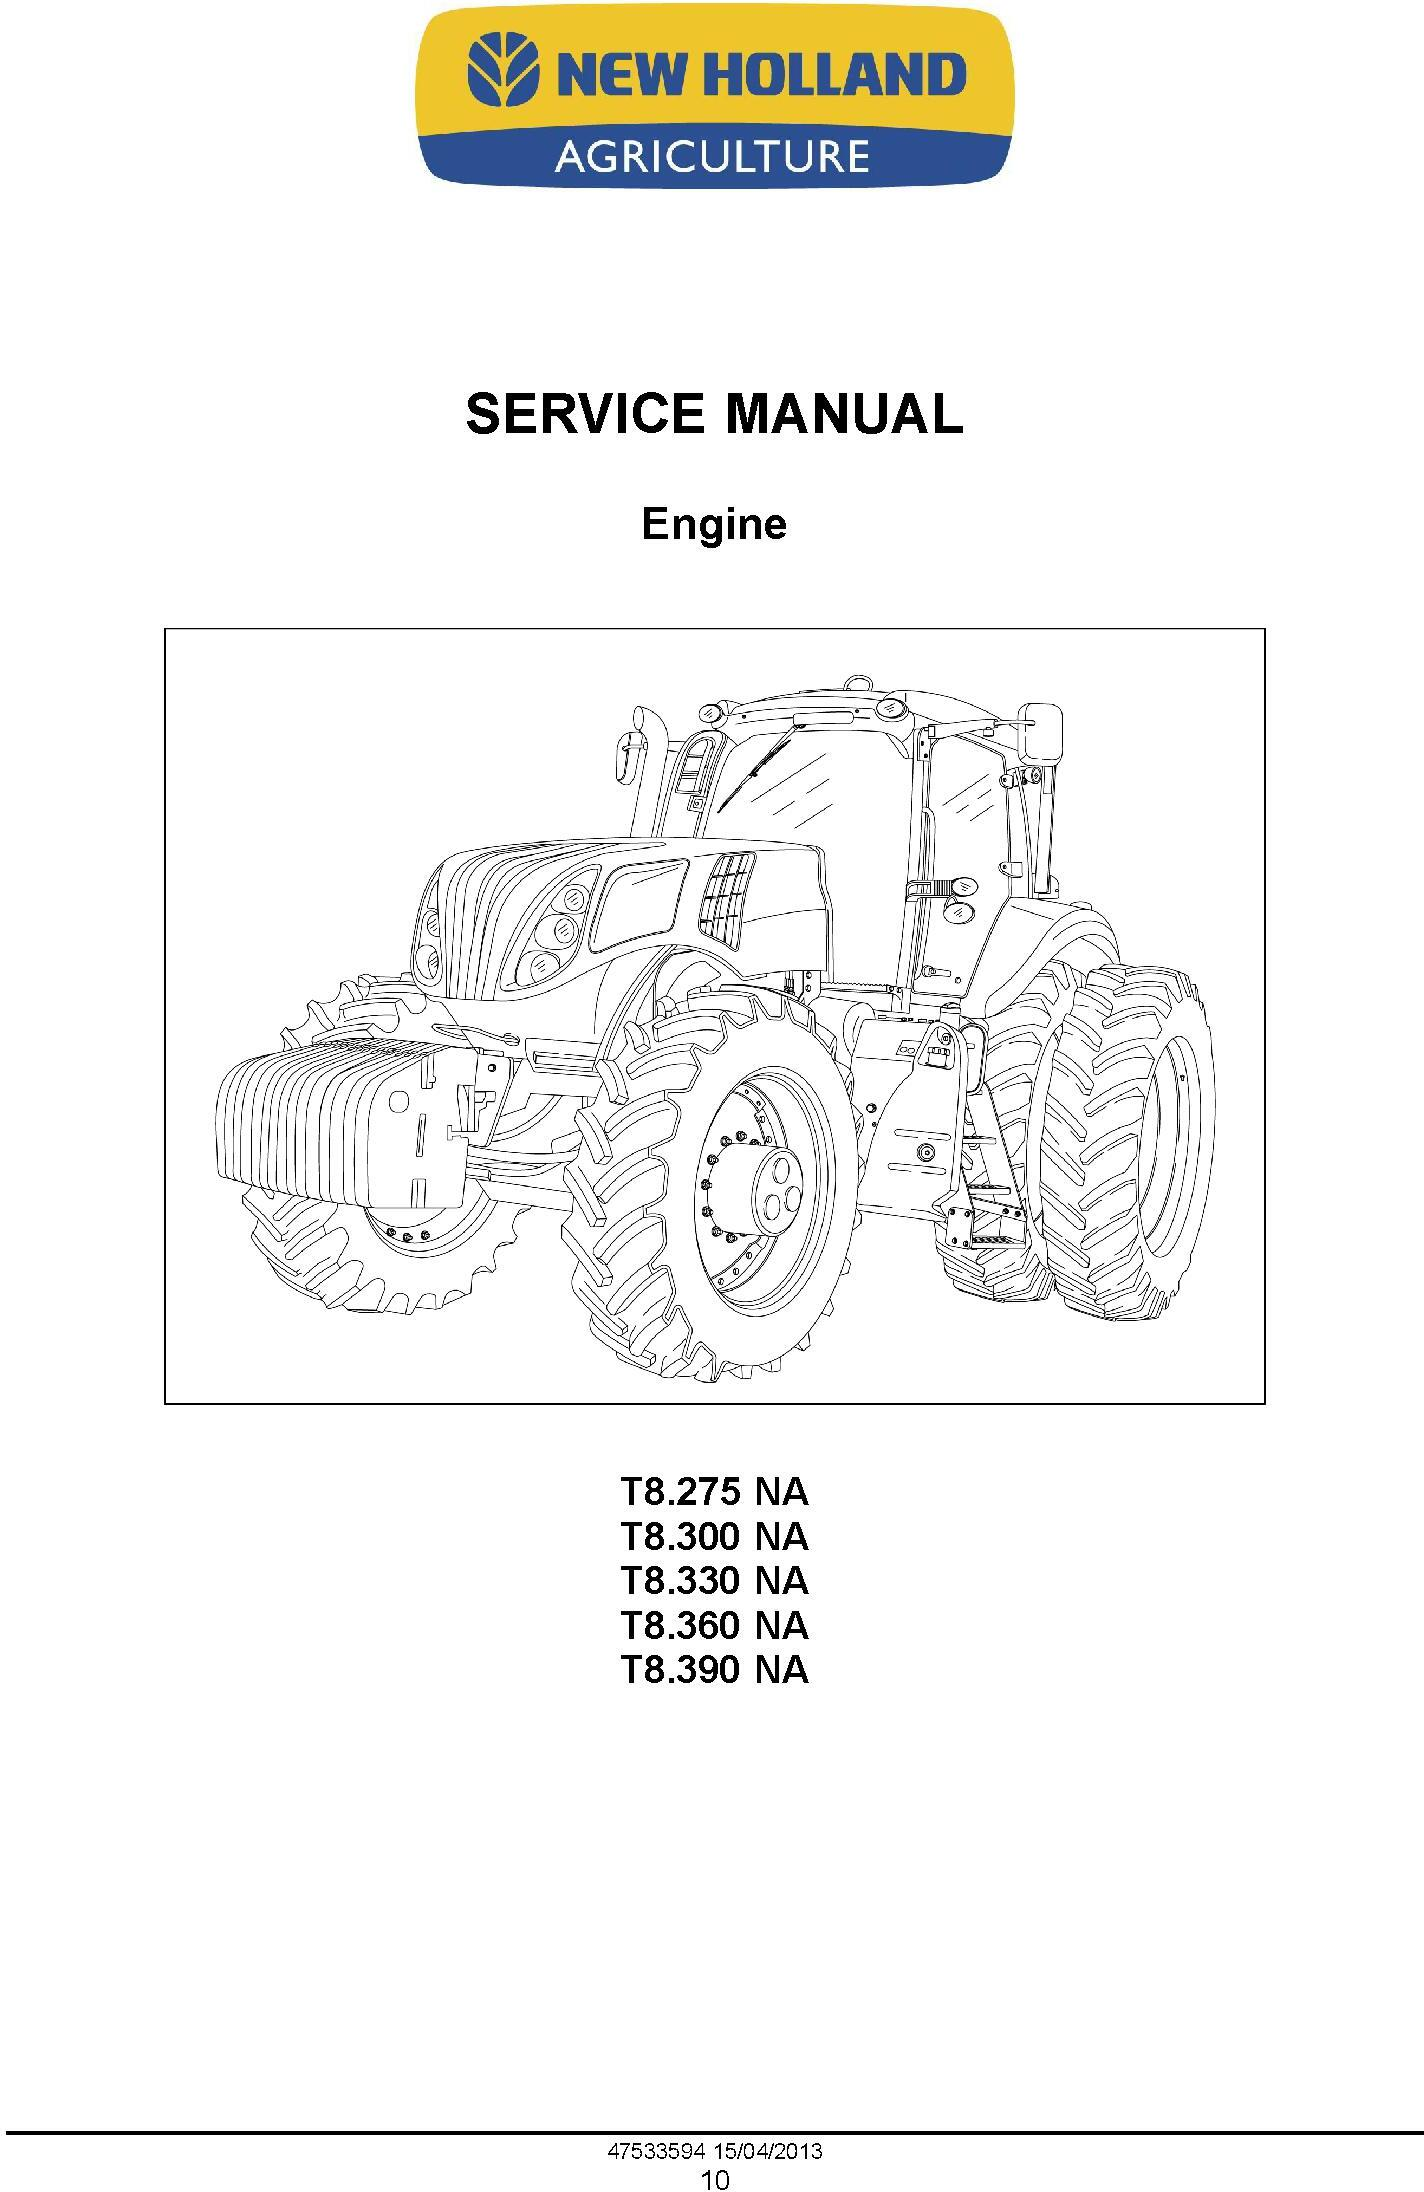 New Holland T8.275, T8.300, T8.330, T8.360, T8.390 Tractor w. Powershift Transmission Service Manual - 1